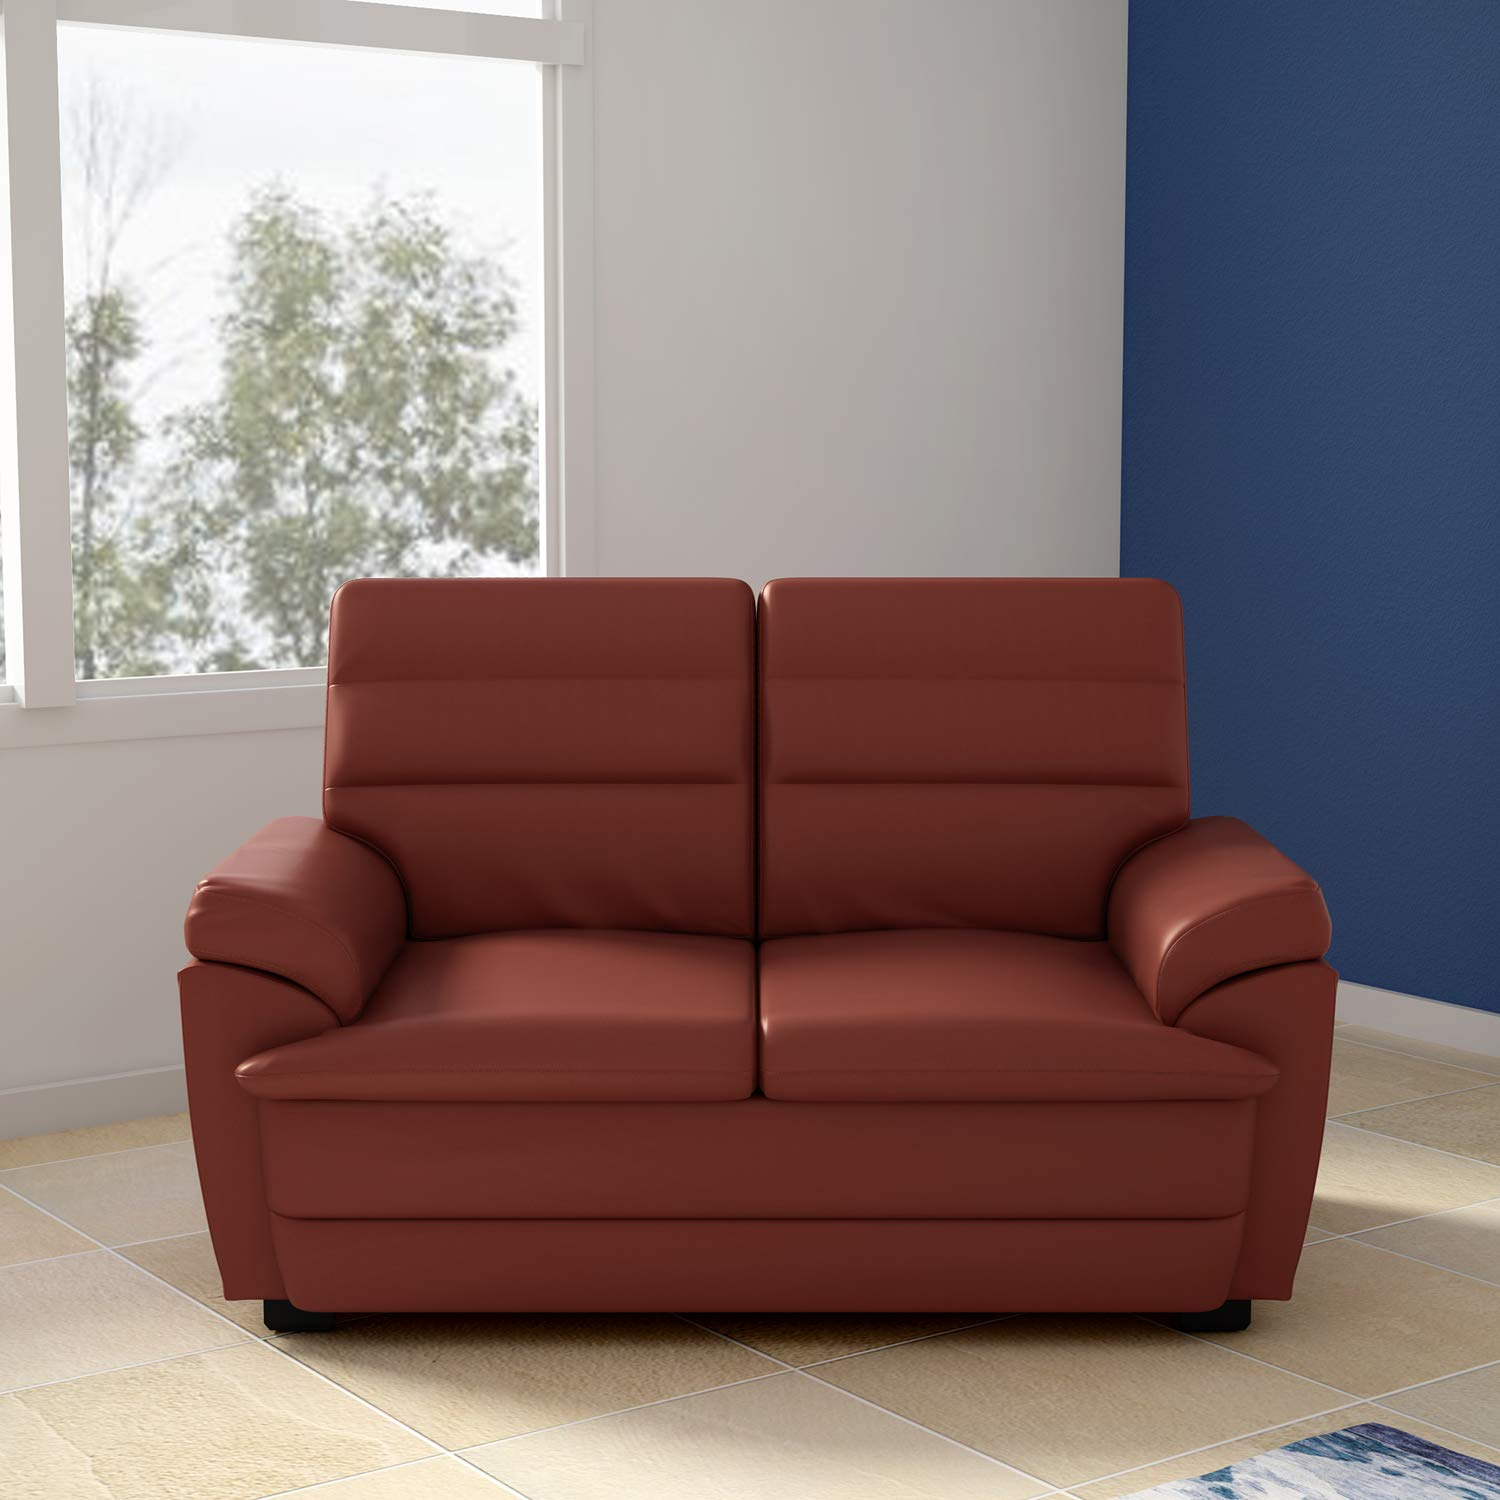 Godrej Interio Spectra Two Seater Sofa (Brown, Glossy Finish